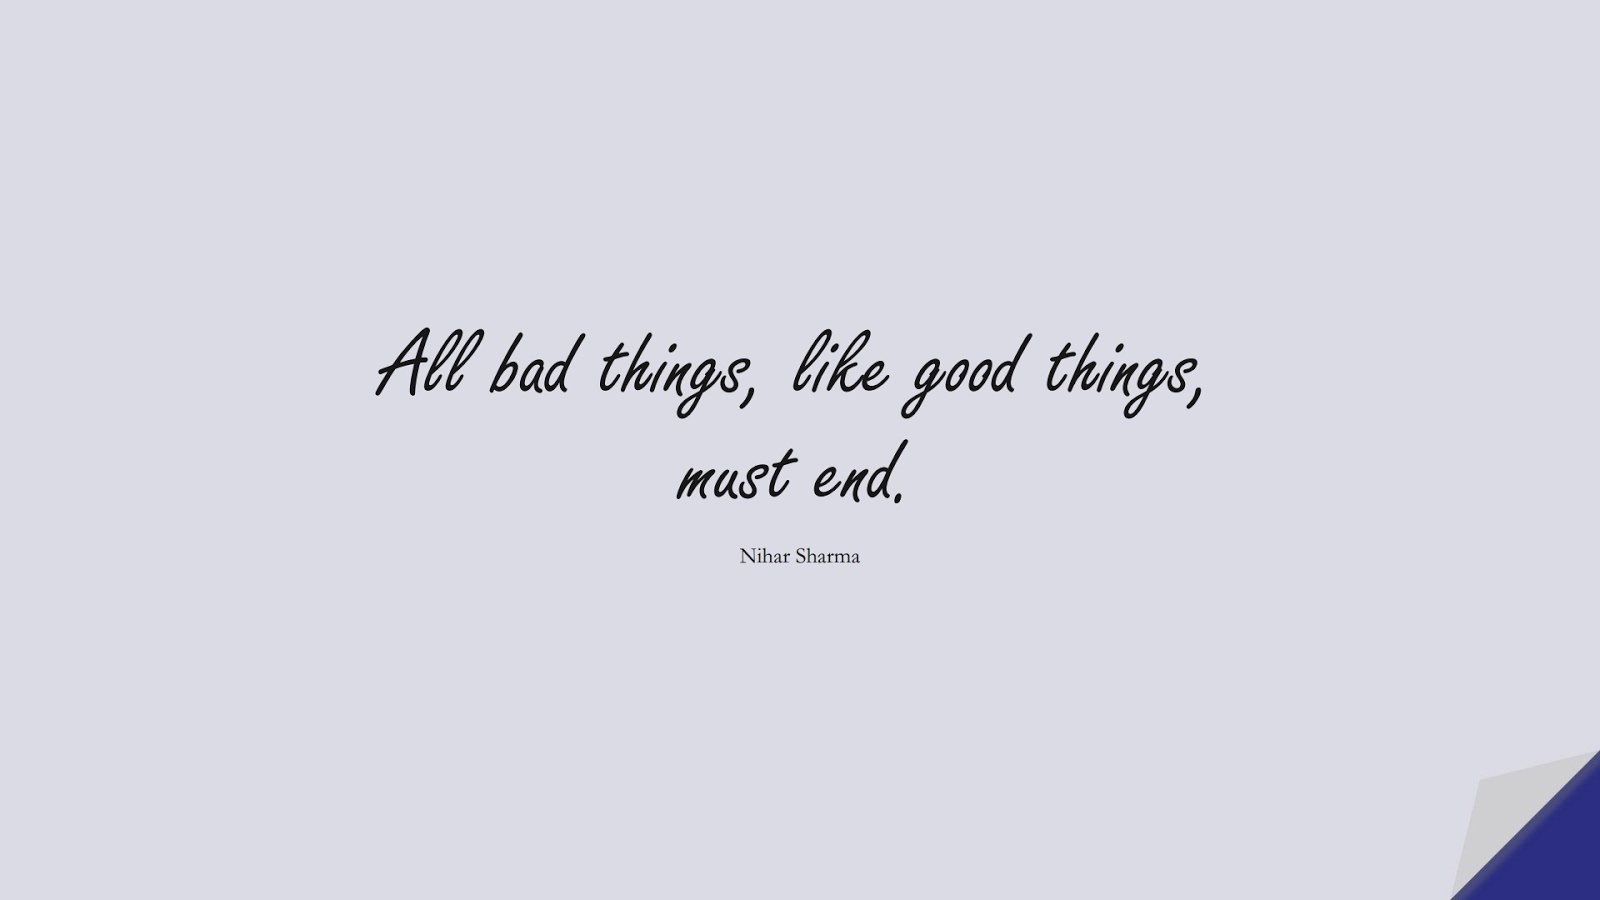 All bad things, like good things, must end. (Nihar Sharma);  #PositiveQuotes